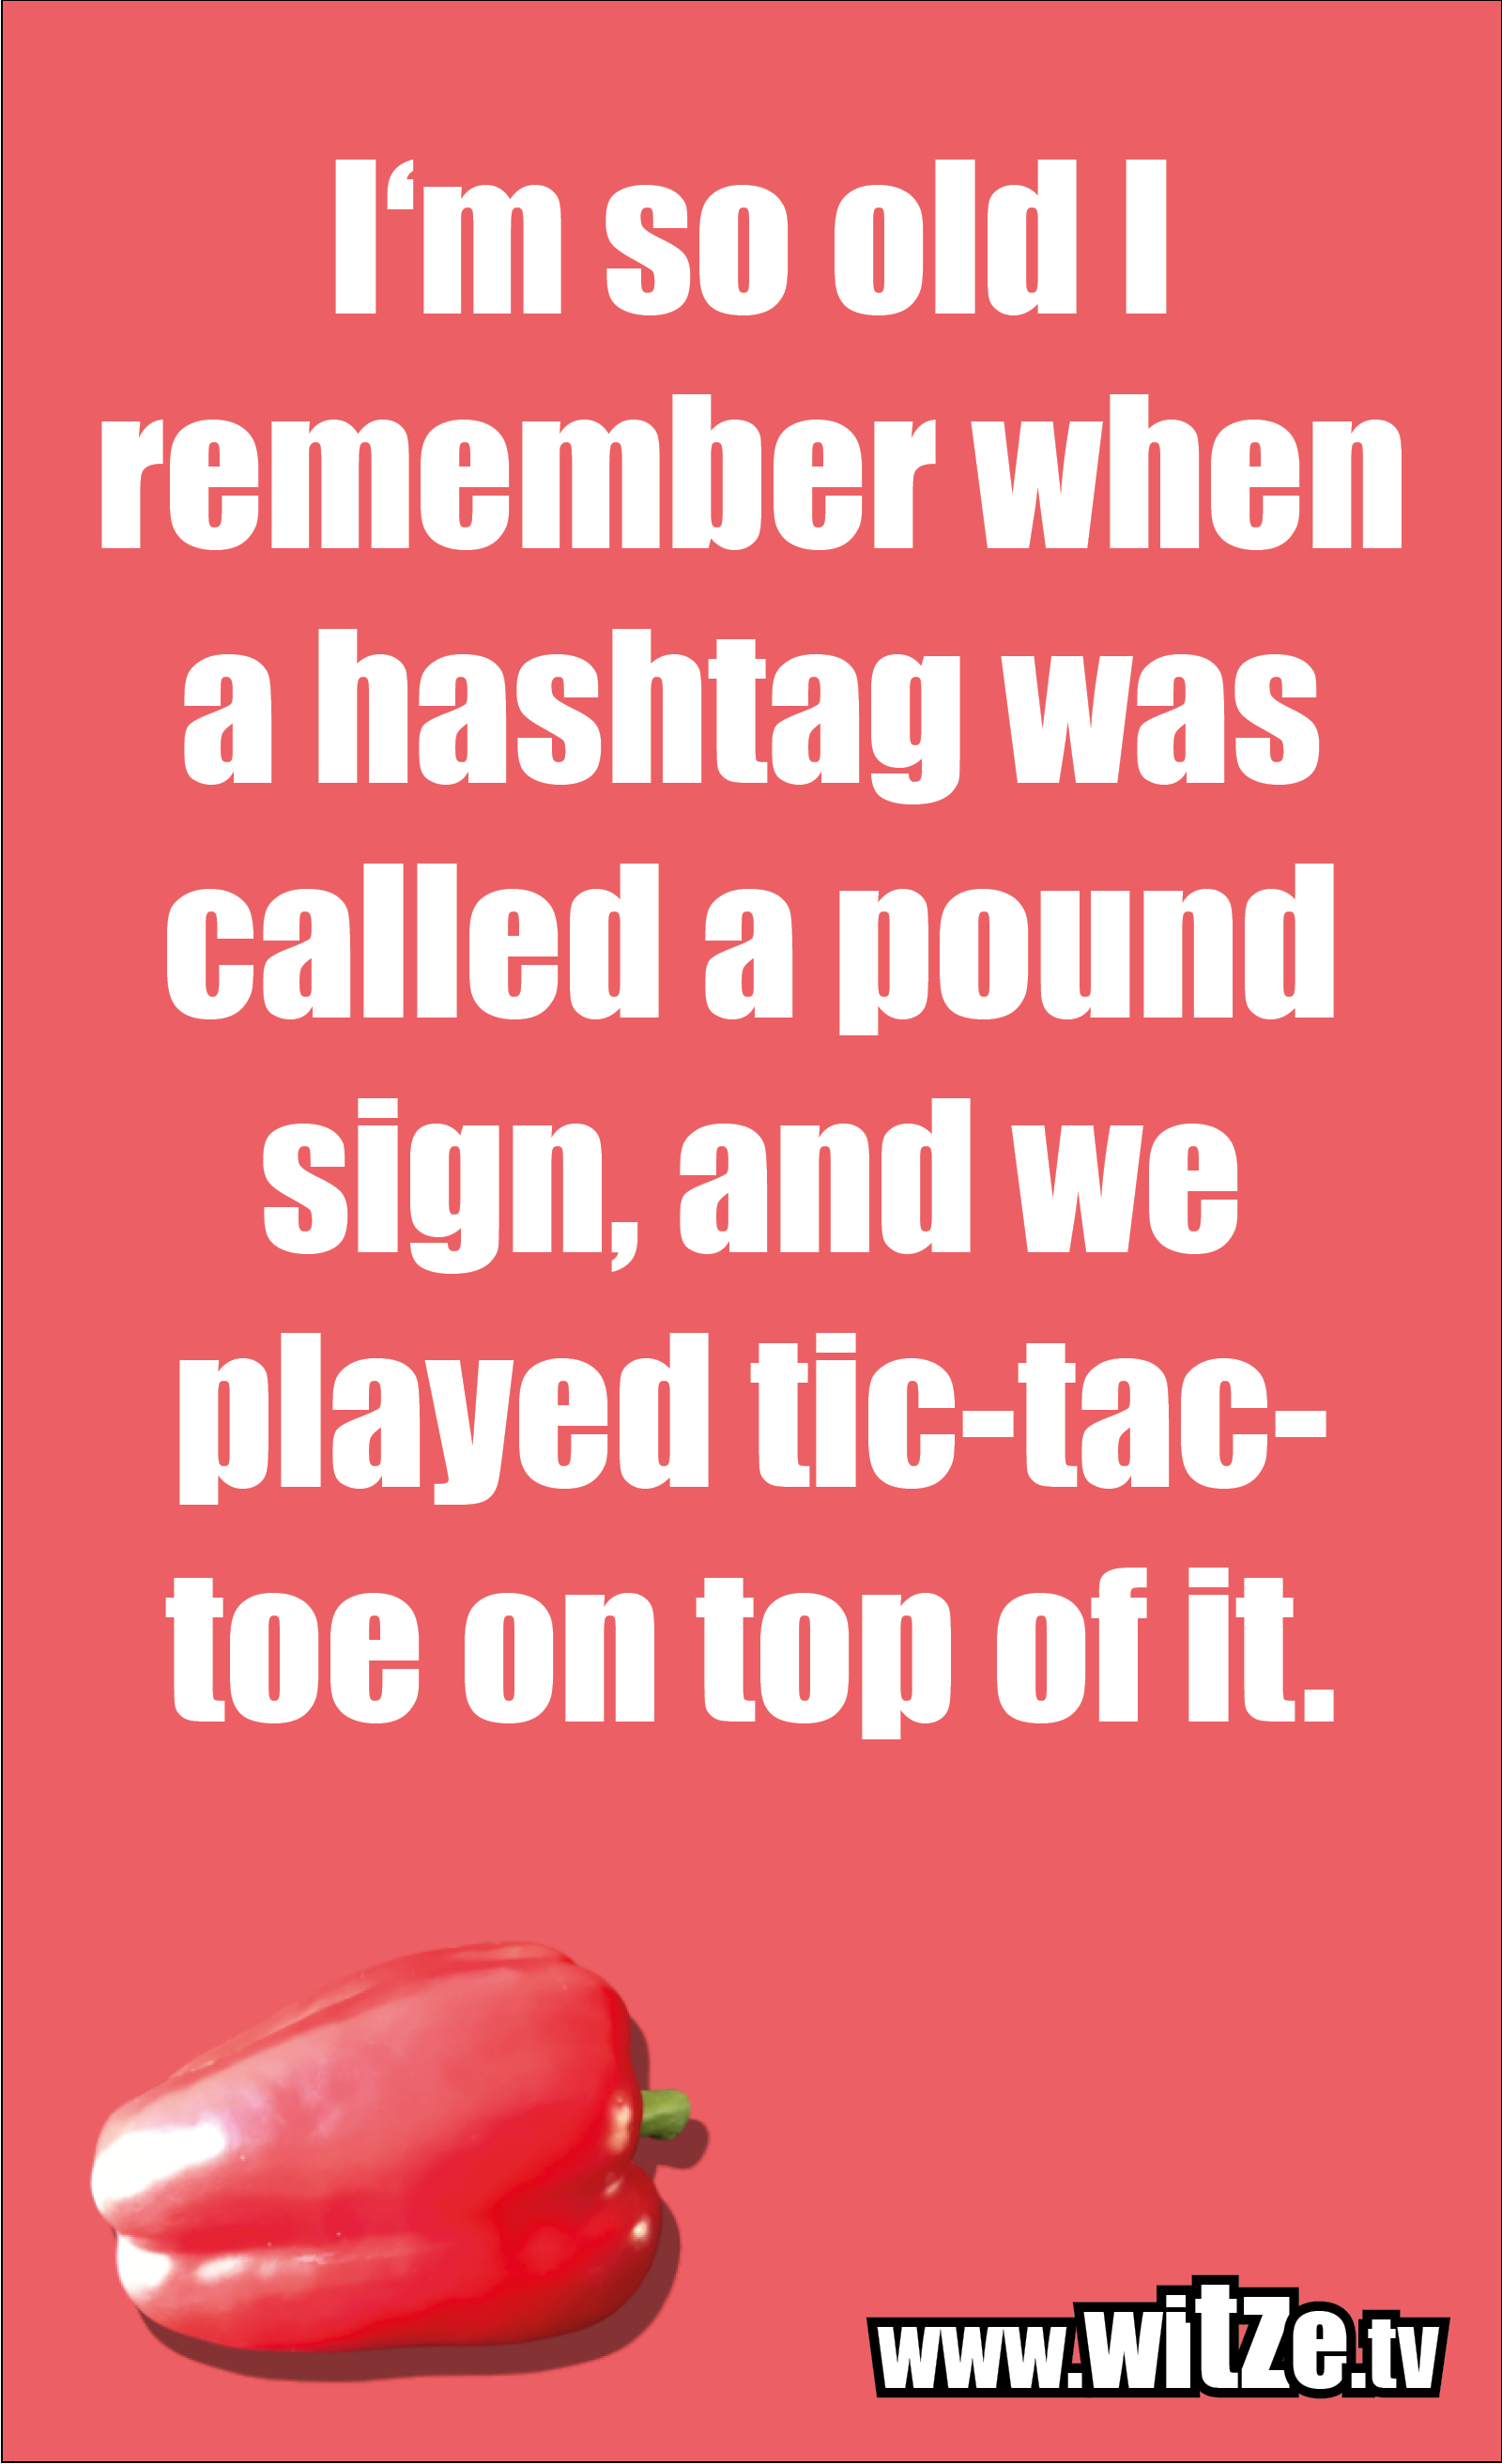 Funny sayings… I'm so old I remember when a hashtag was called a pound sign, and we played tic-tac-toe on top of it.